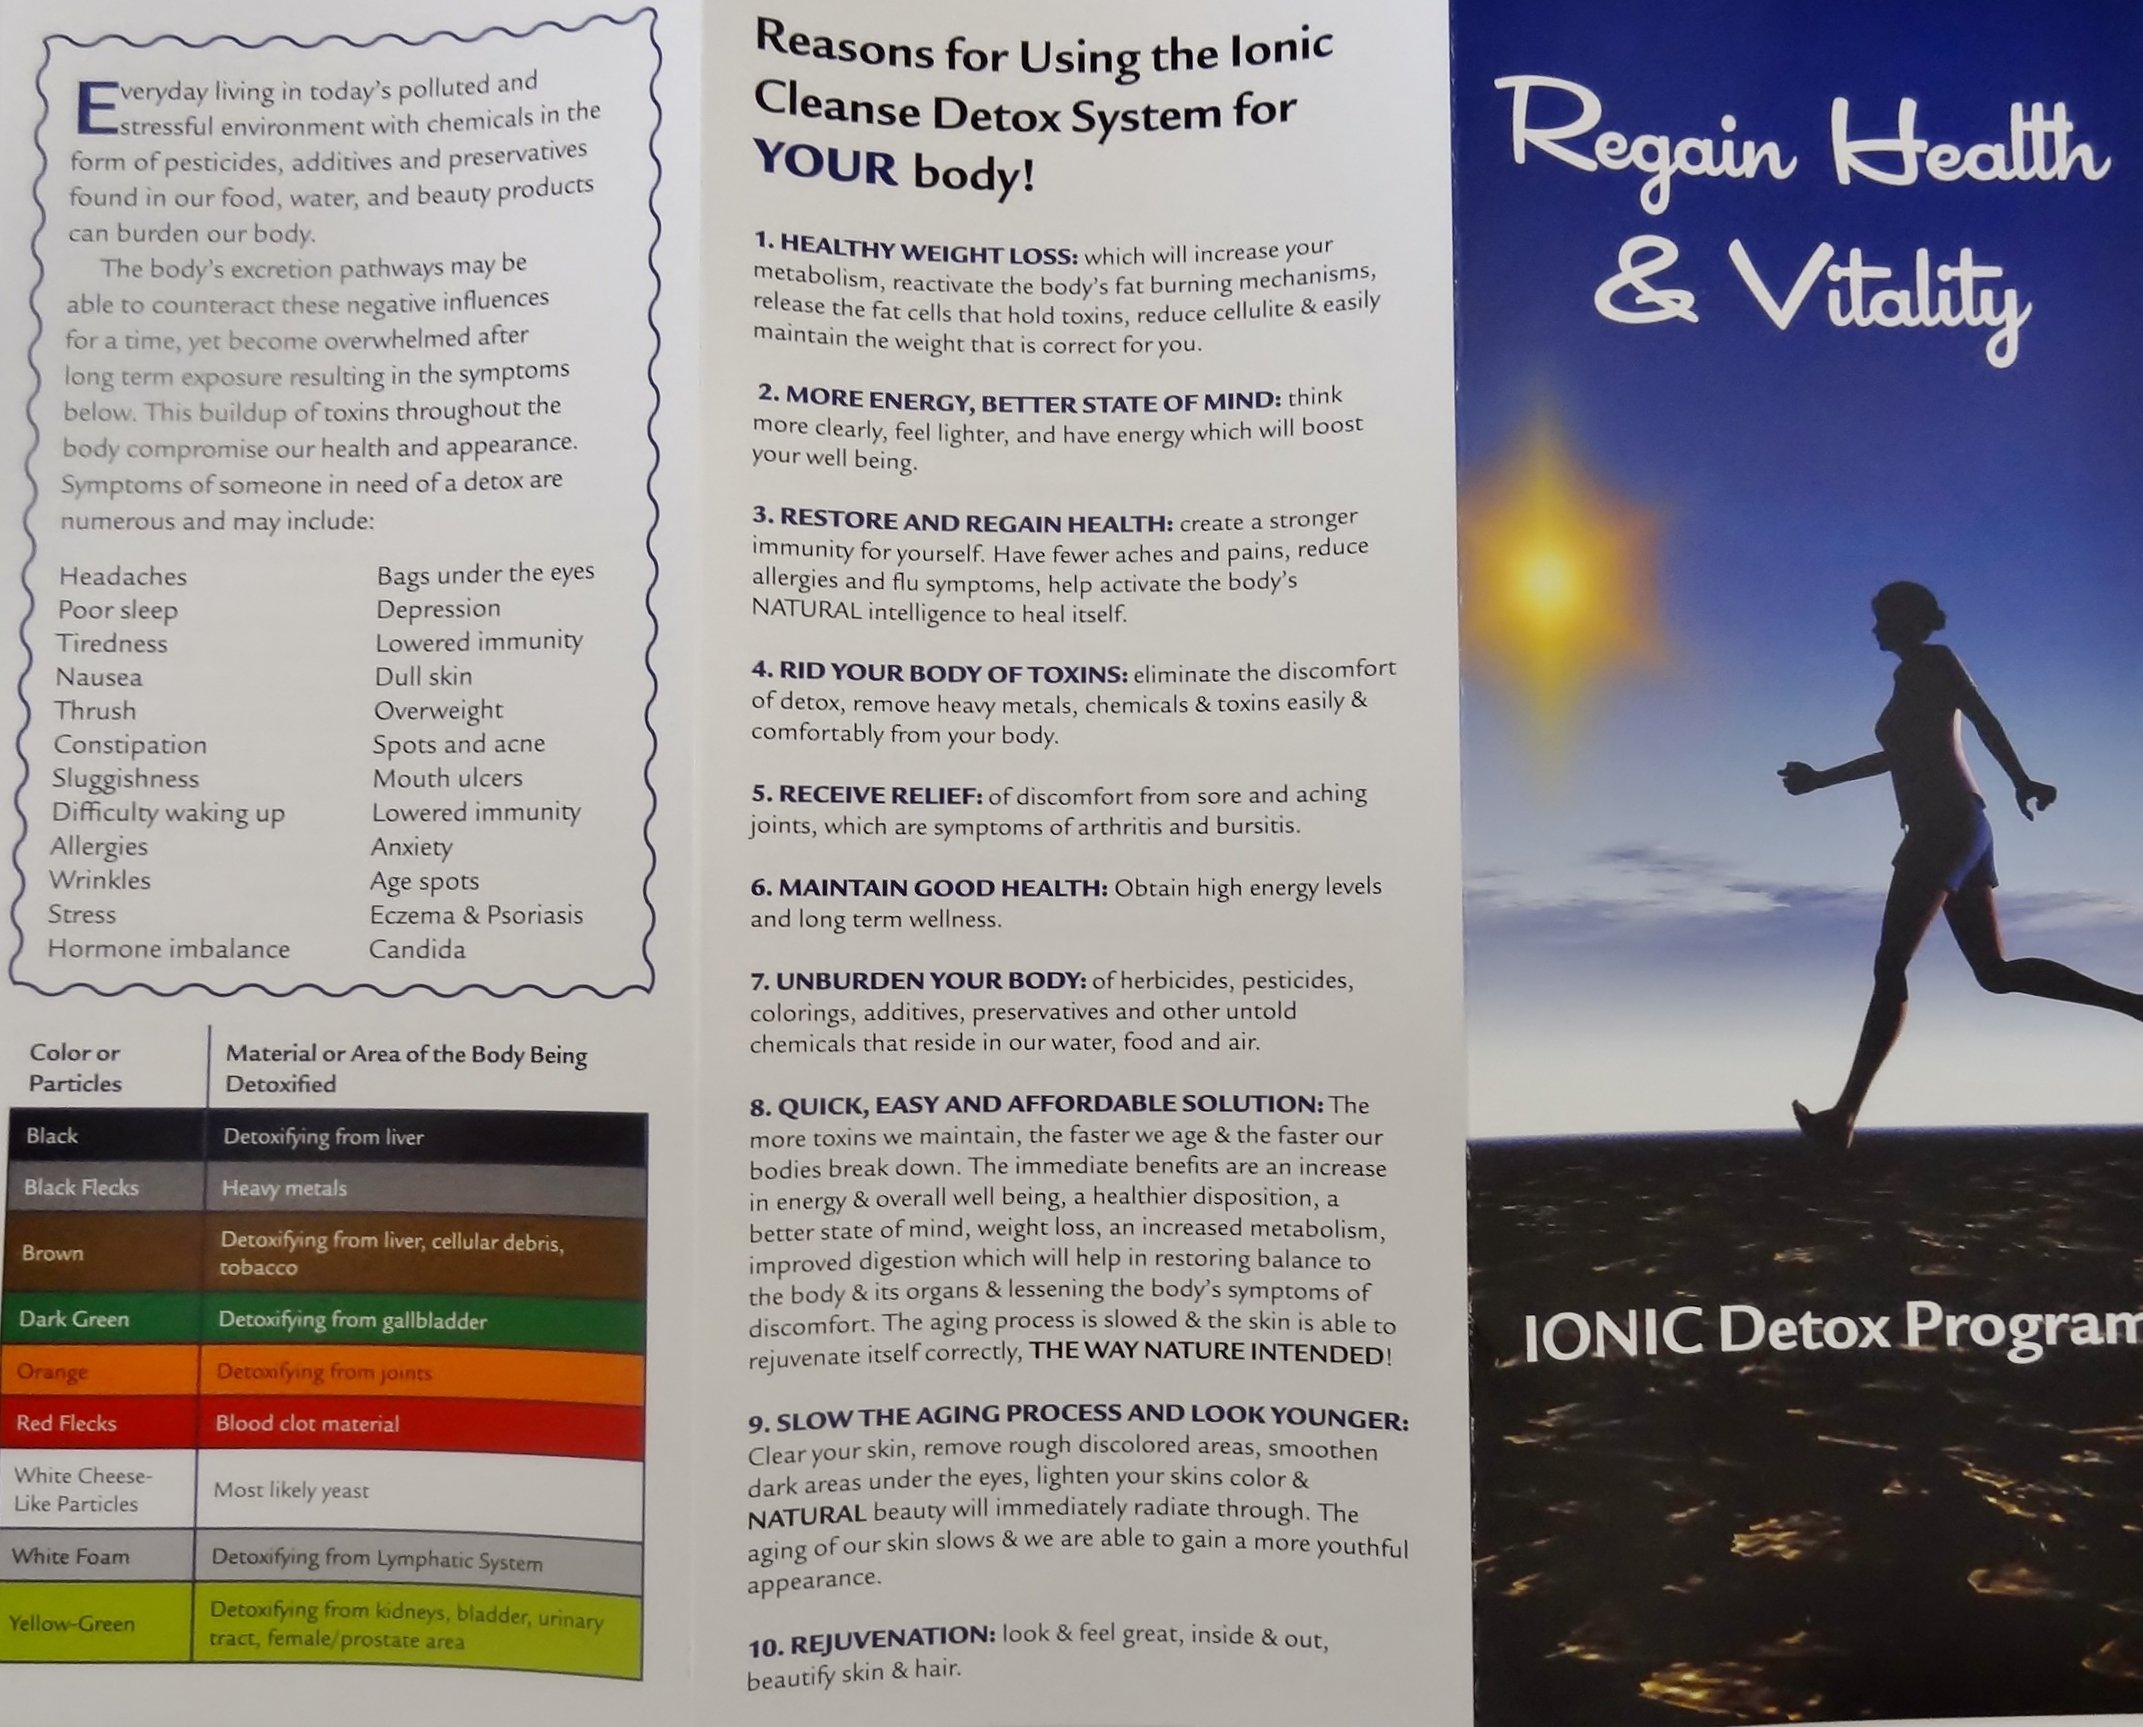 FOOT SPA DETOX MACHINE - With Foot Basin - FREE Regain Health and Vitality Brochure and 16 page Booklet. - From Better Health Company by BHC (Image #4)